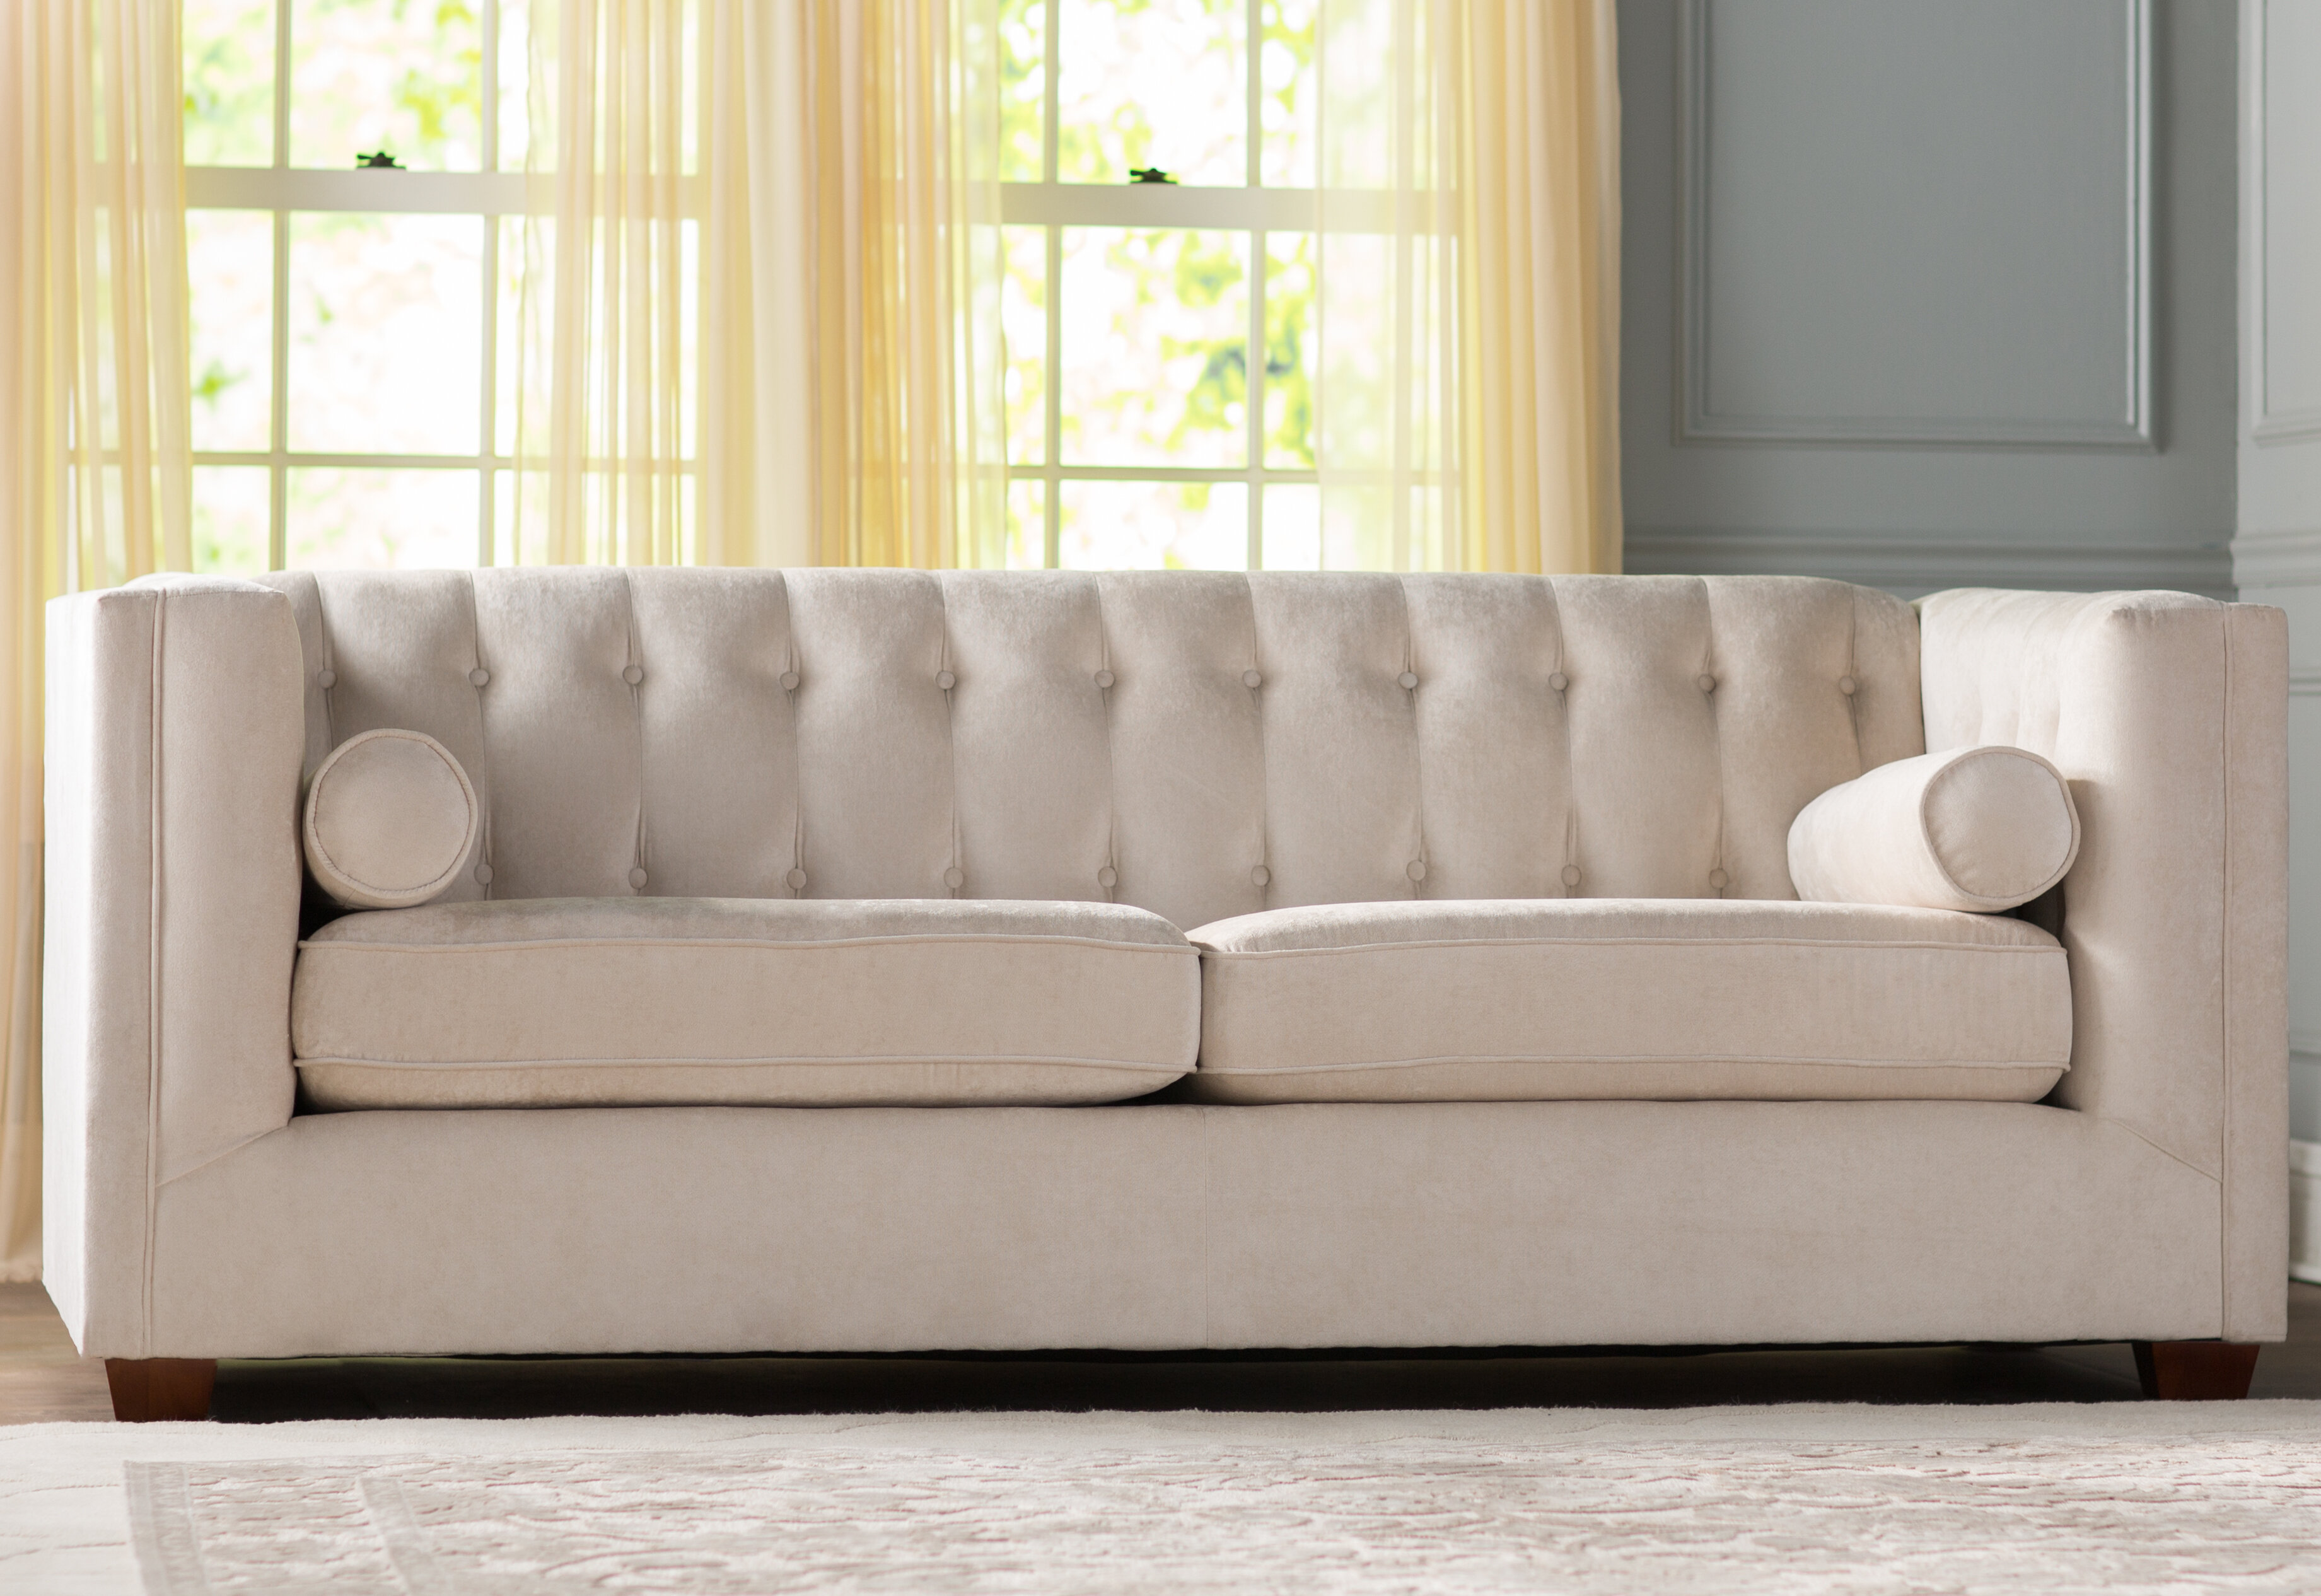 Cleaning 101 How To Clean A Sofa Wayfair